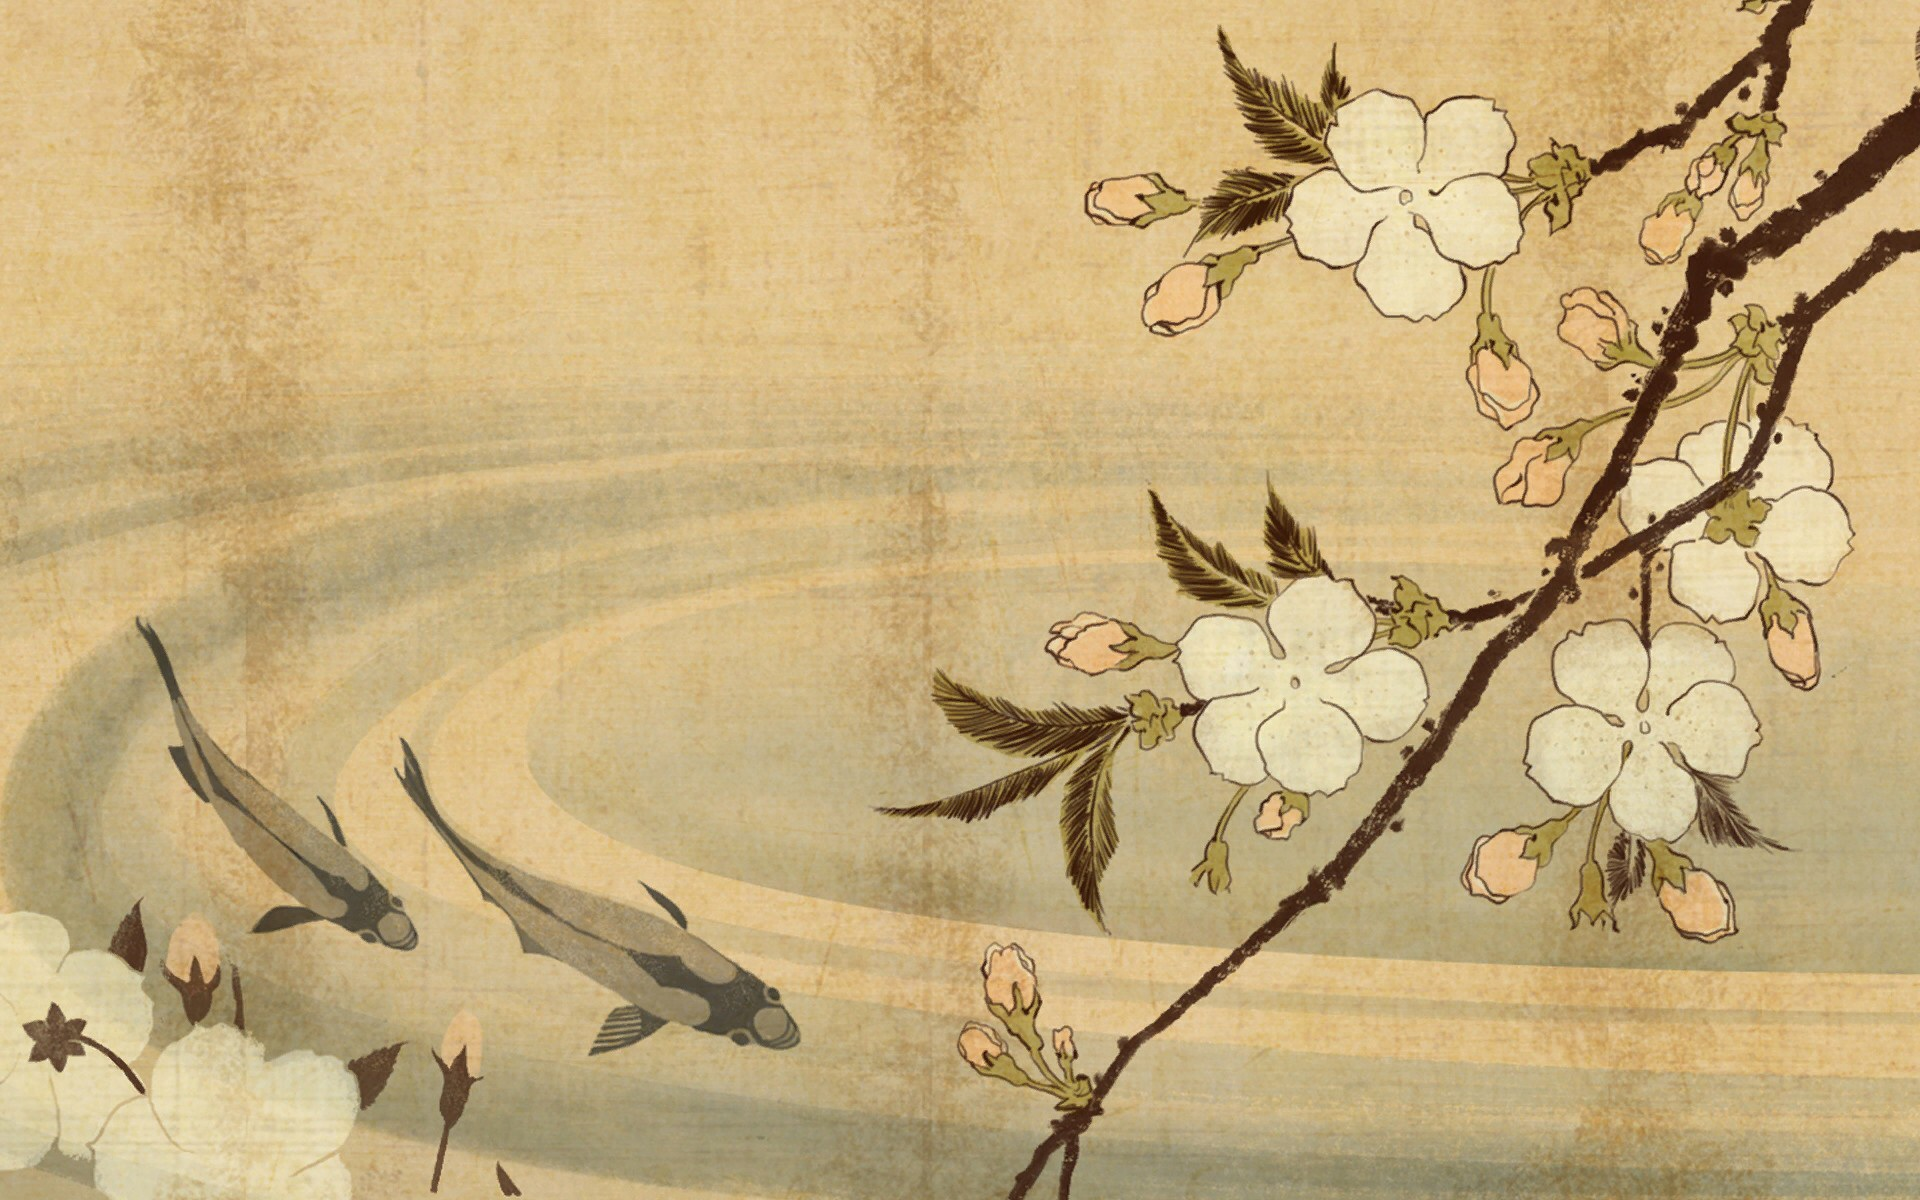 Japanese Print wallpapers | Japanese Print stock photos